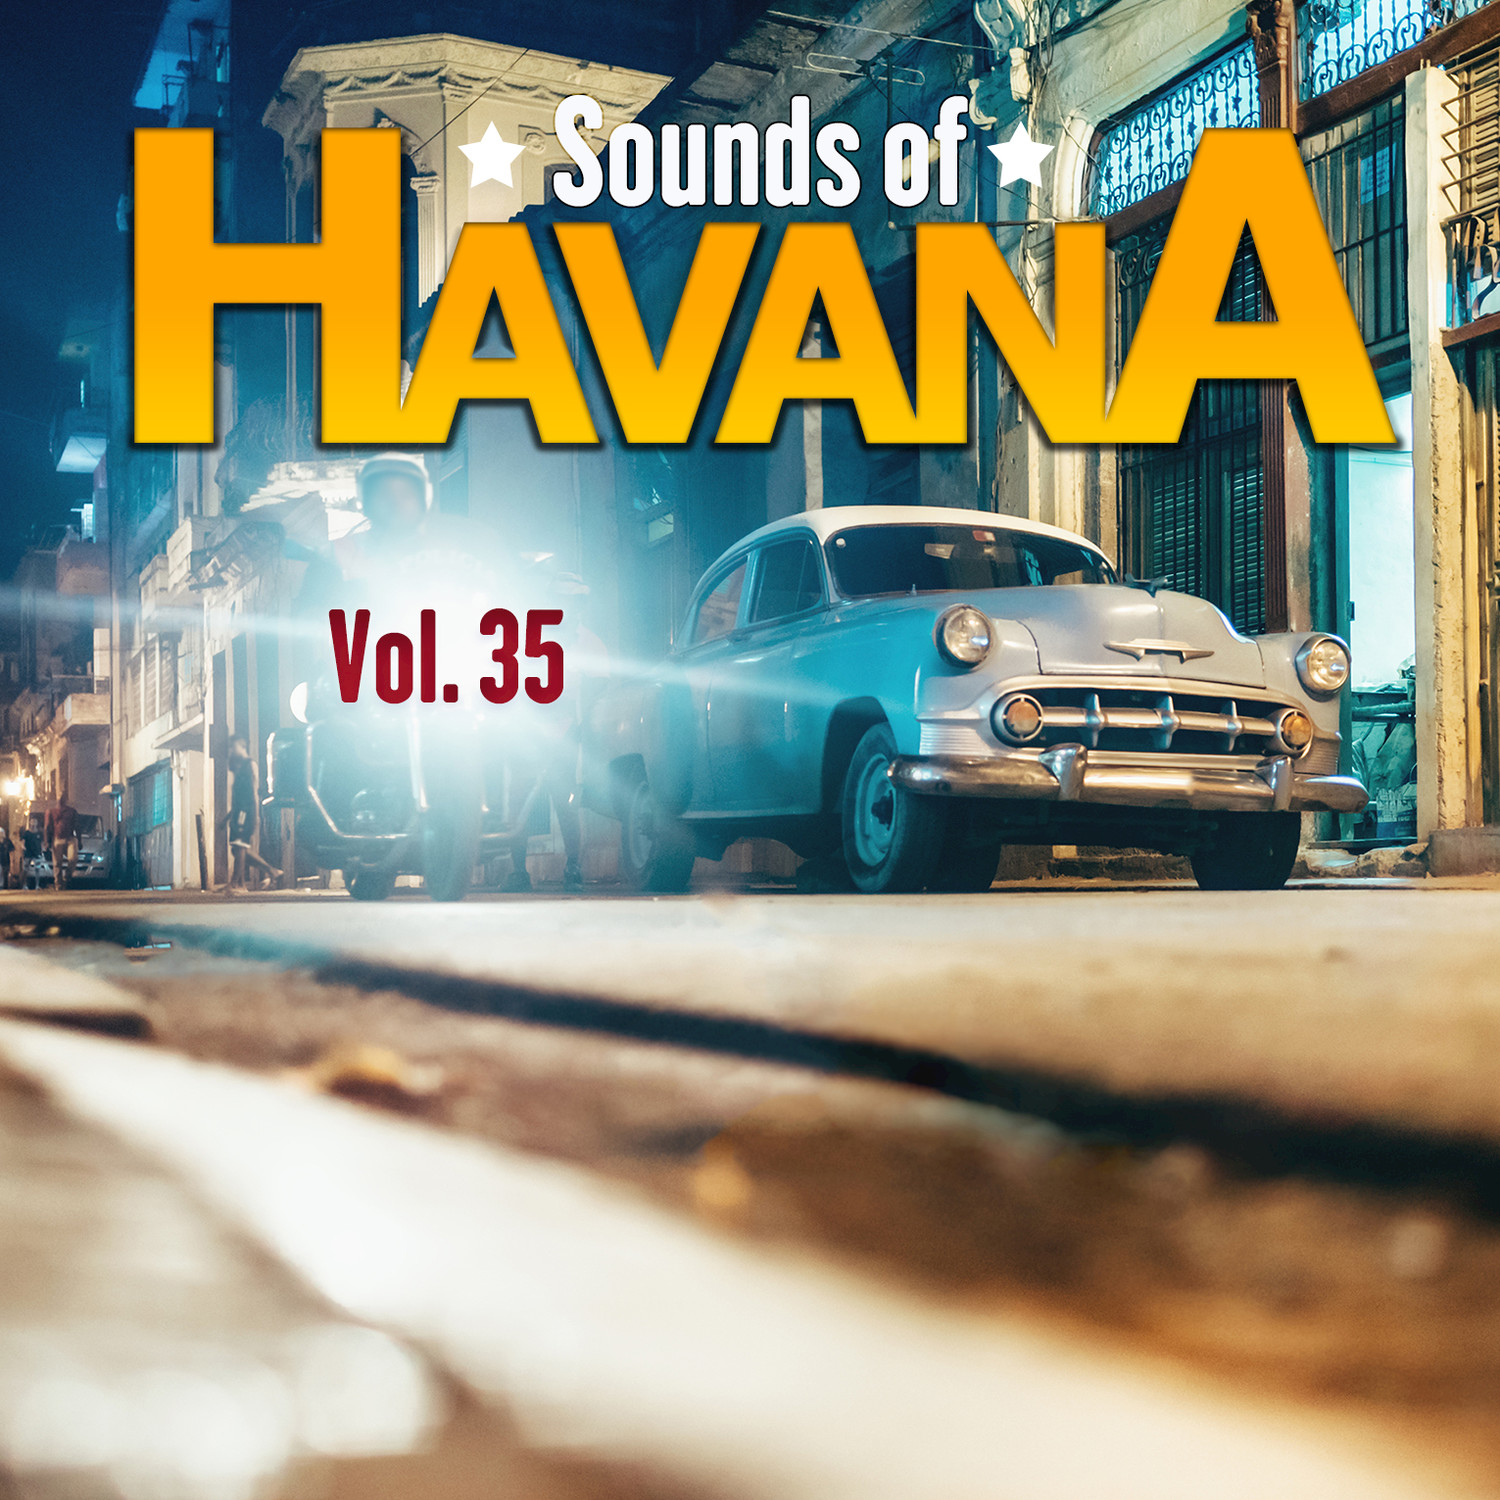 Sounds of Havana, Vol. 35